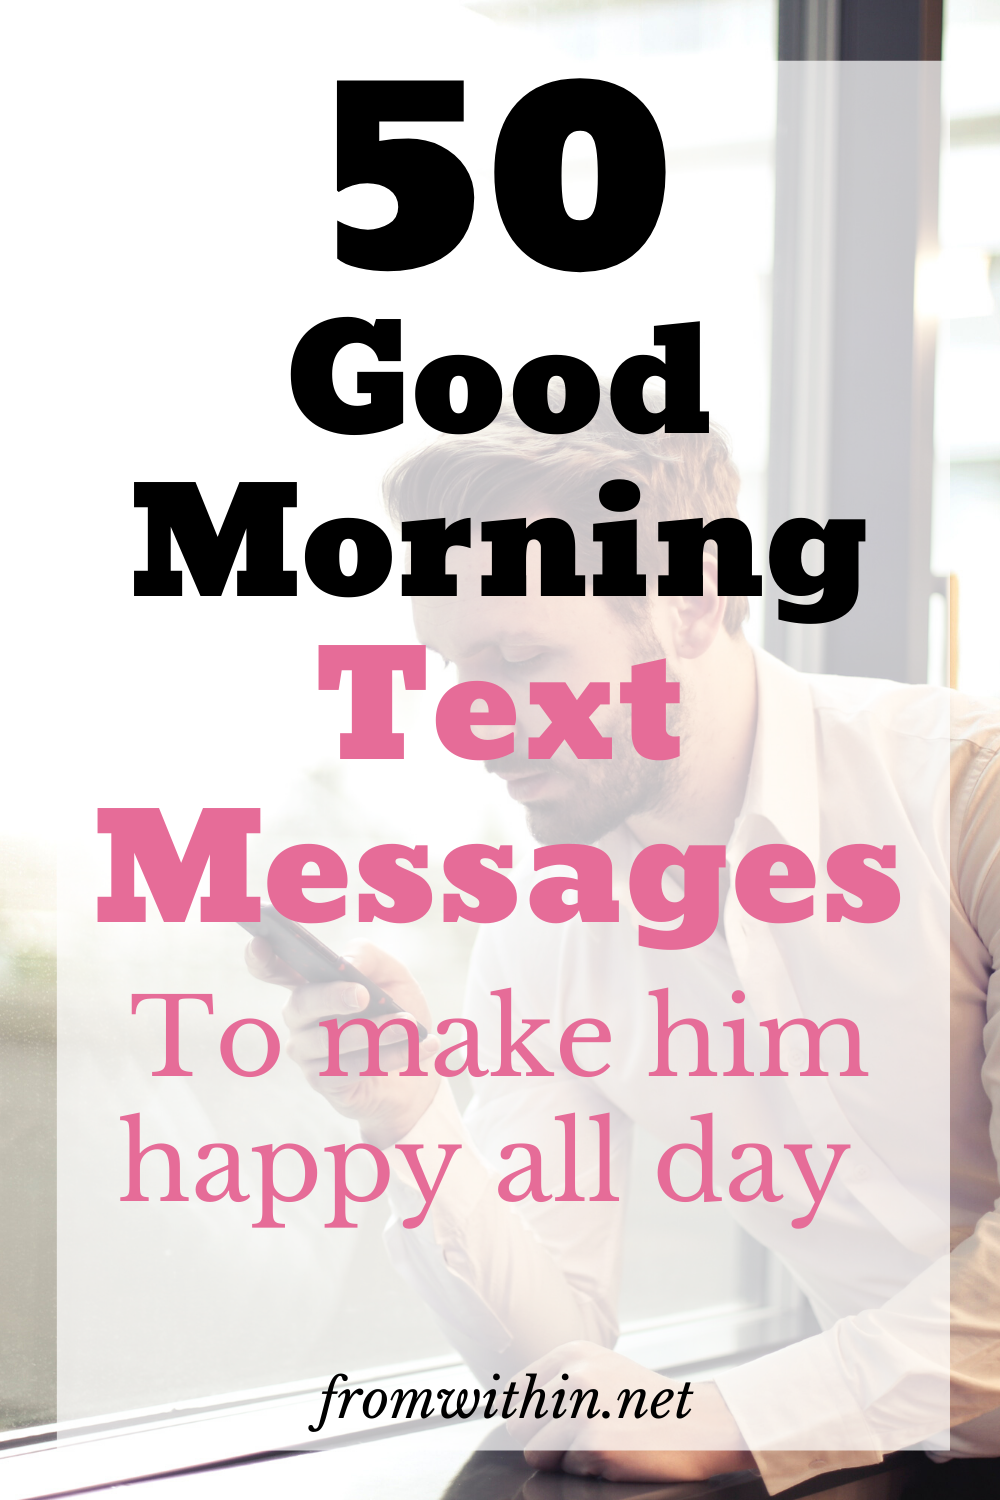 50 Good Morning Text Messages To Make Him Feel Loved